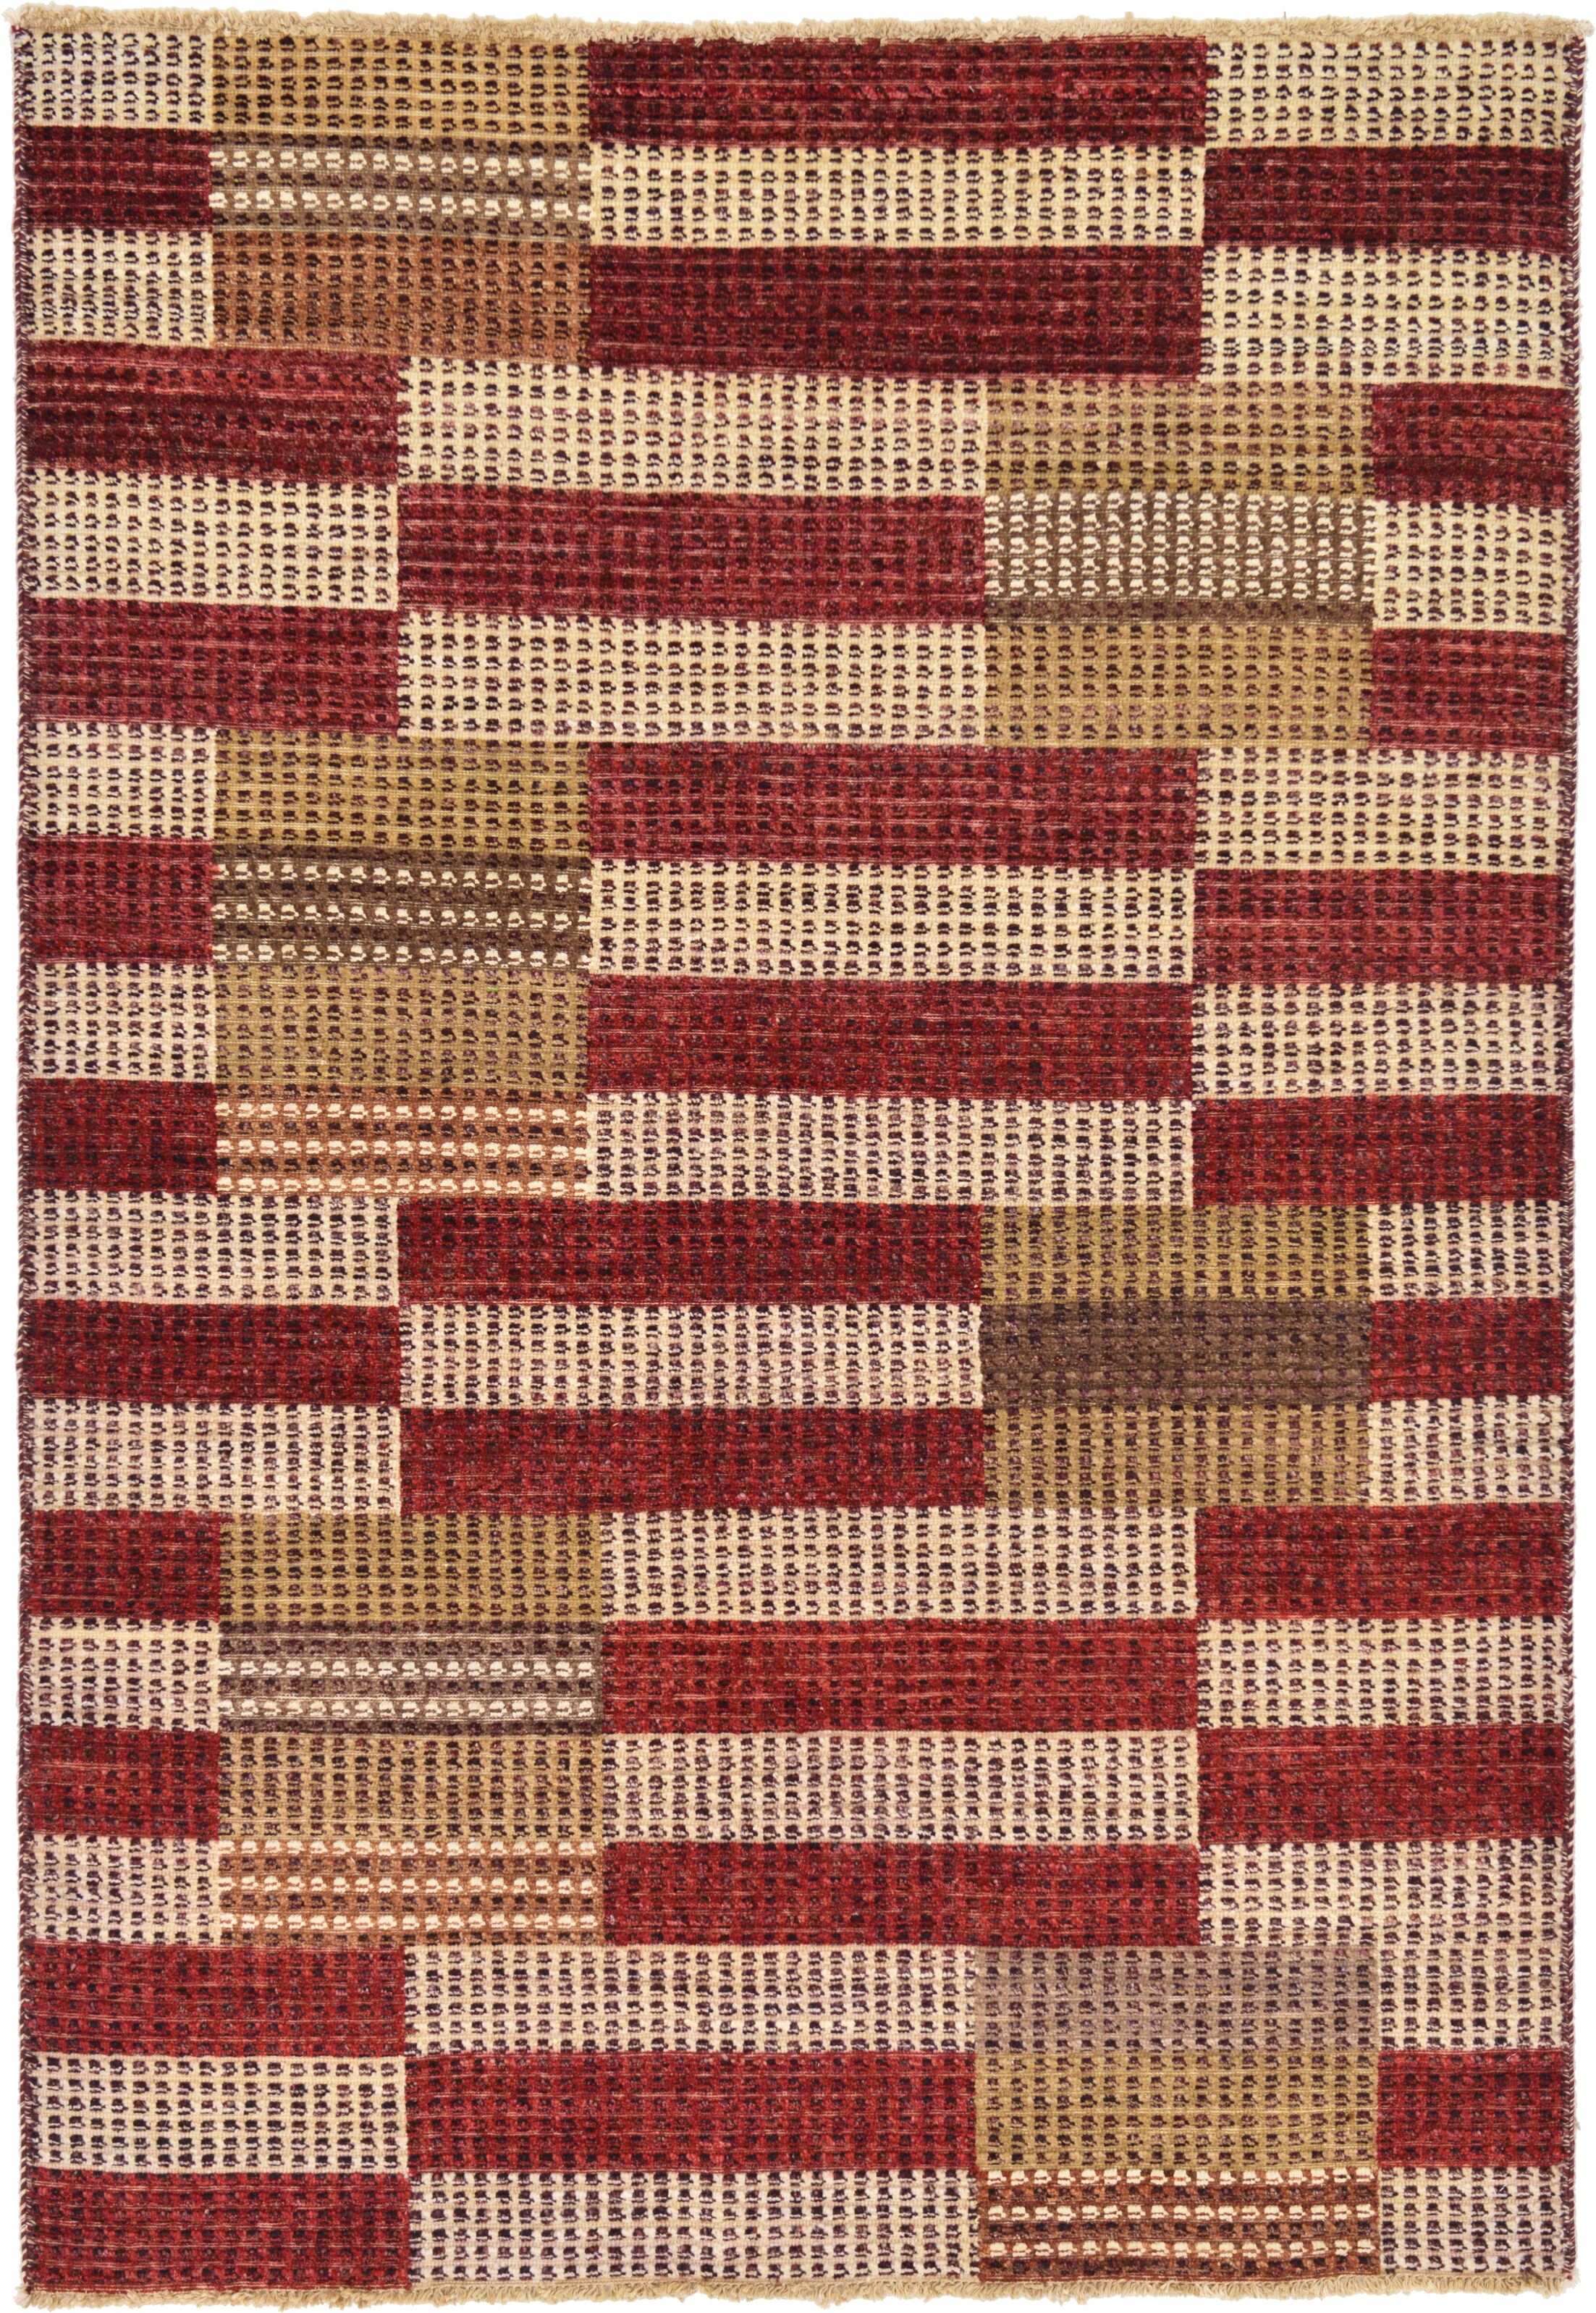 One-of-a-Kind Nash Hand-Knotted Wool/Silk Brown/Red Area Rug